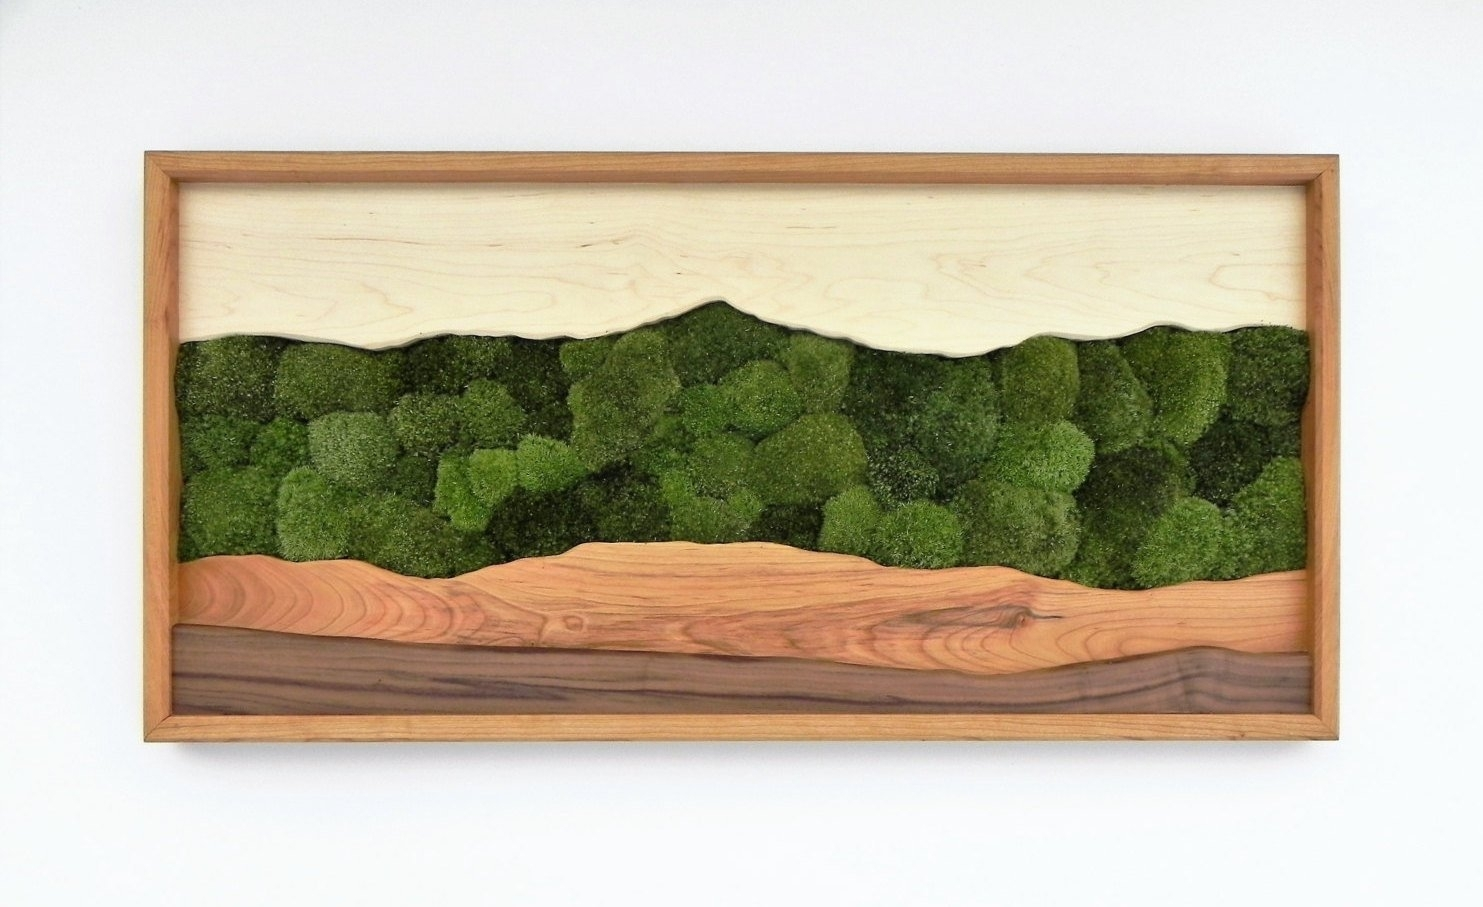 Green Mountain Moss Wall Art /sugar Maple, Cherry, Walnut, Preserved Intended For Latest Green Wall Art (Gallery 7 of 20)